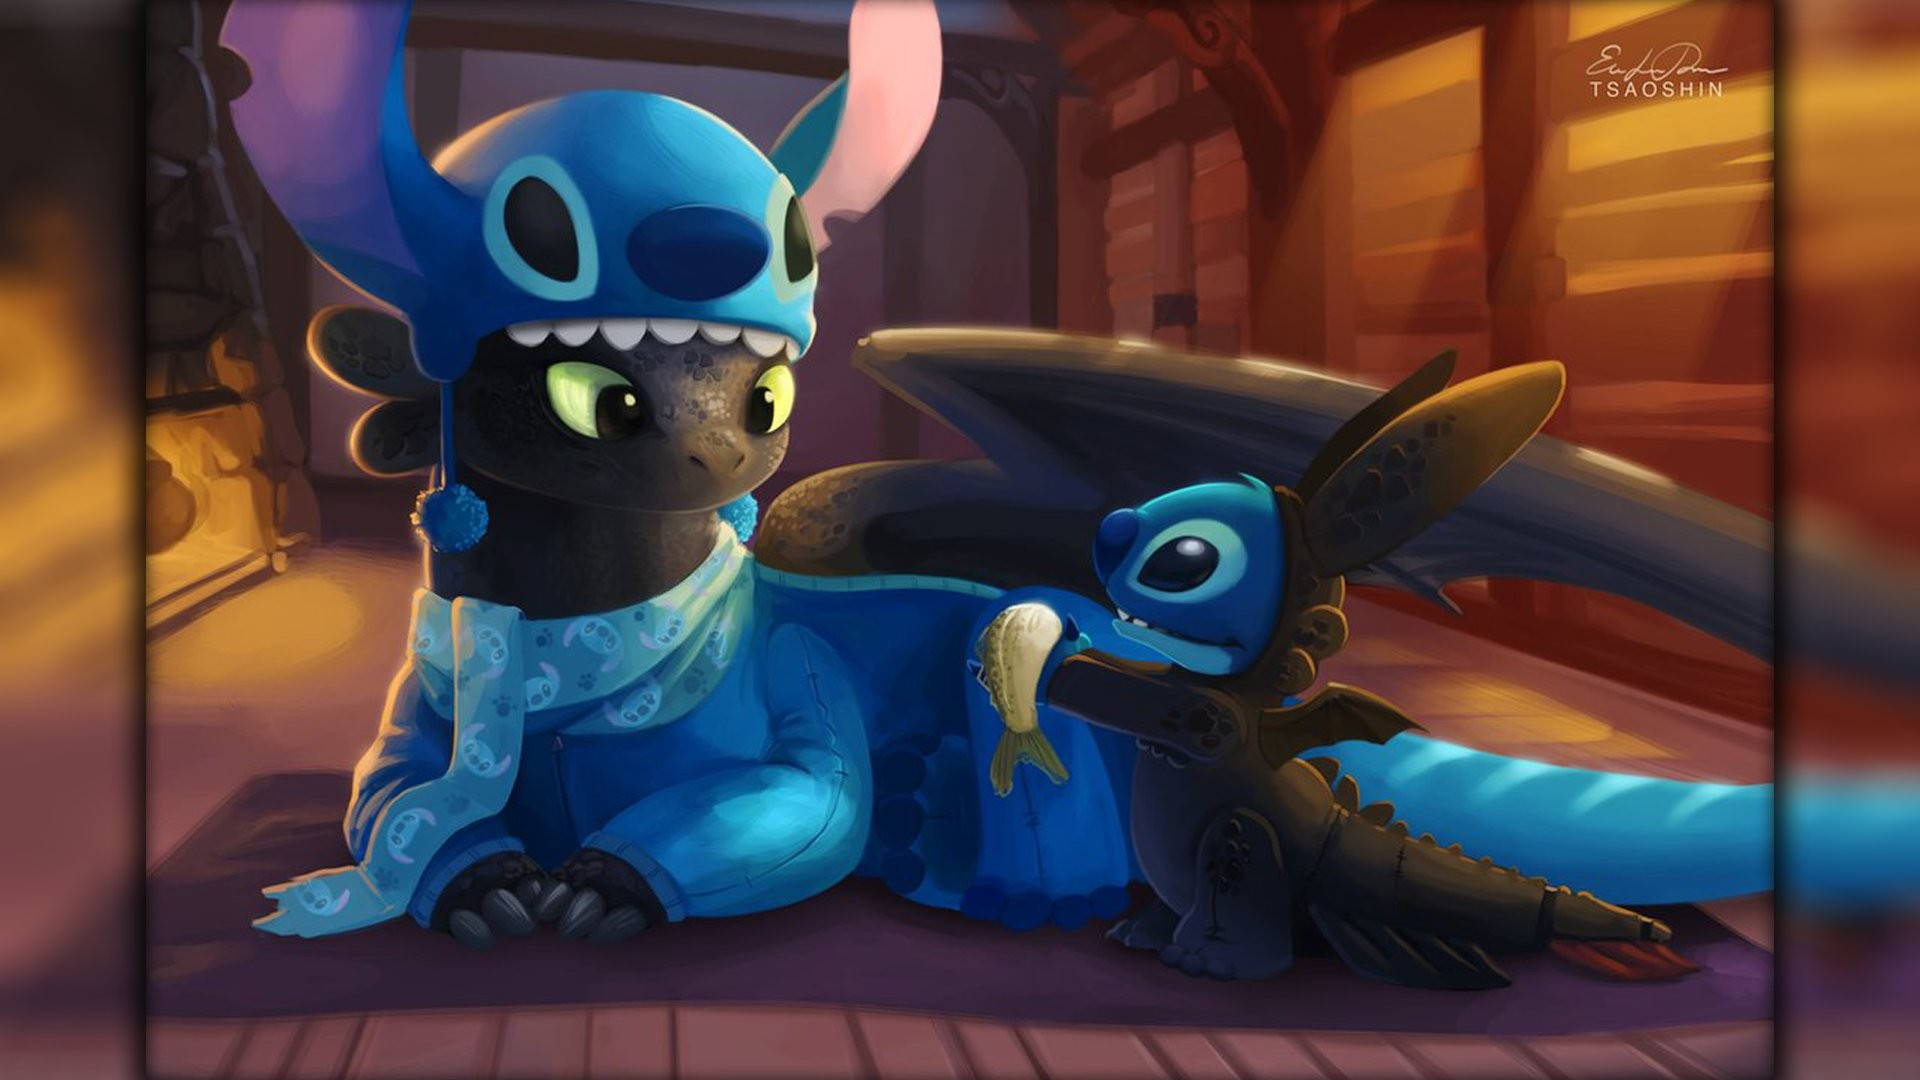 Cute Anime Characters Wallpapers Stitch Hd Wallpaper Impremedia Net